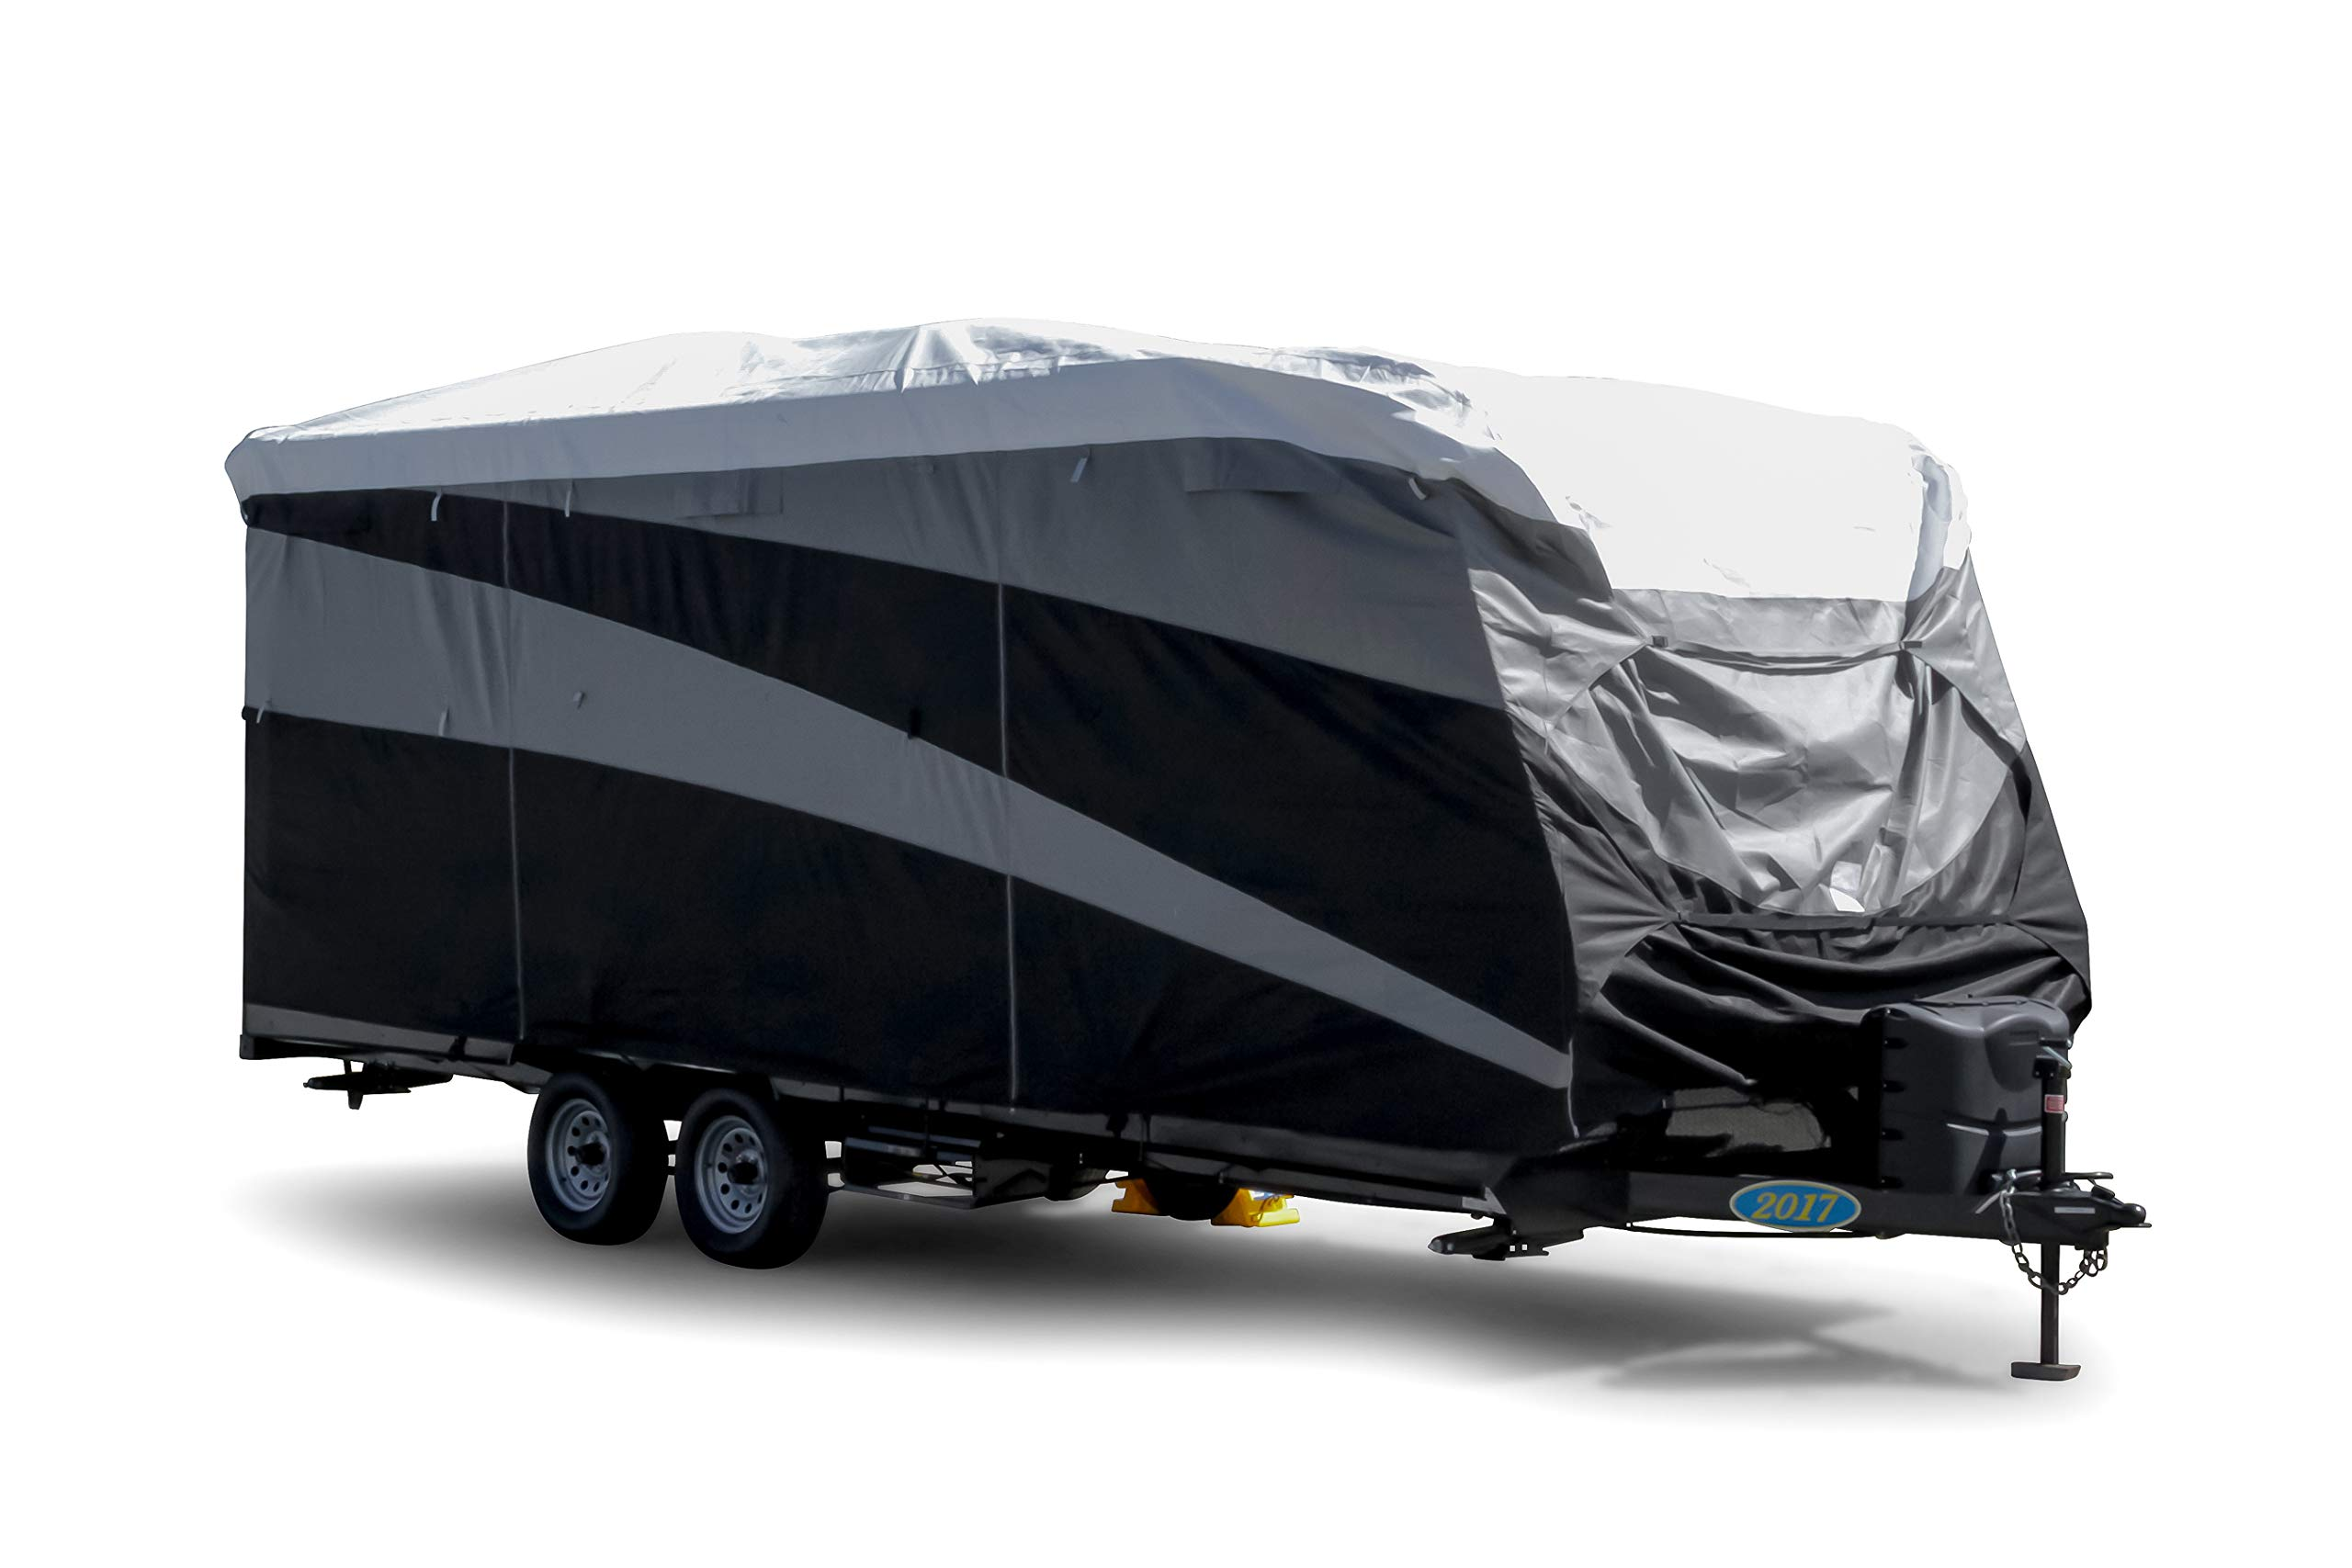 Camco ULTRAGuard Supreme RV Cover-Extremely Durable Design Fits Travel Trailers 26' -28', Weatherproof with UV Protection and Dupont Tyvek Top (56132)